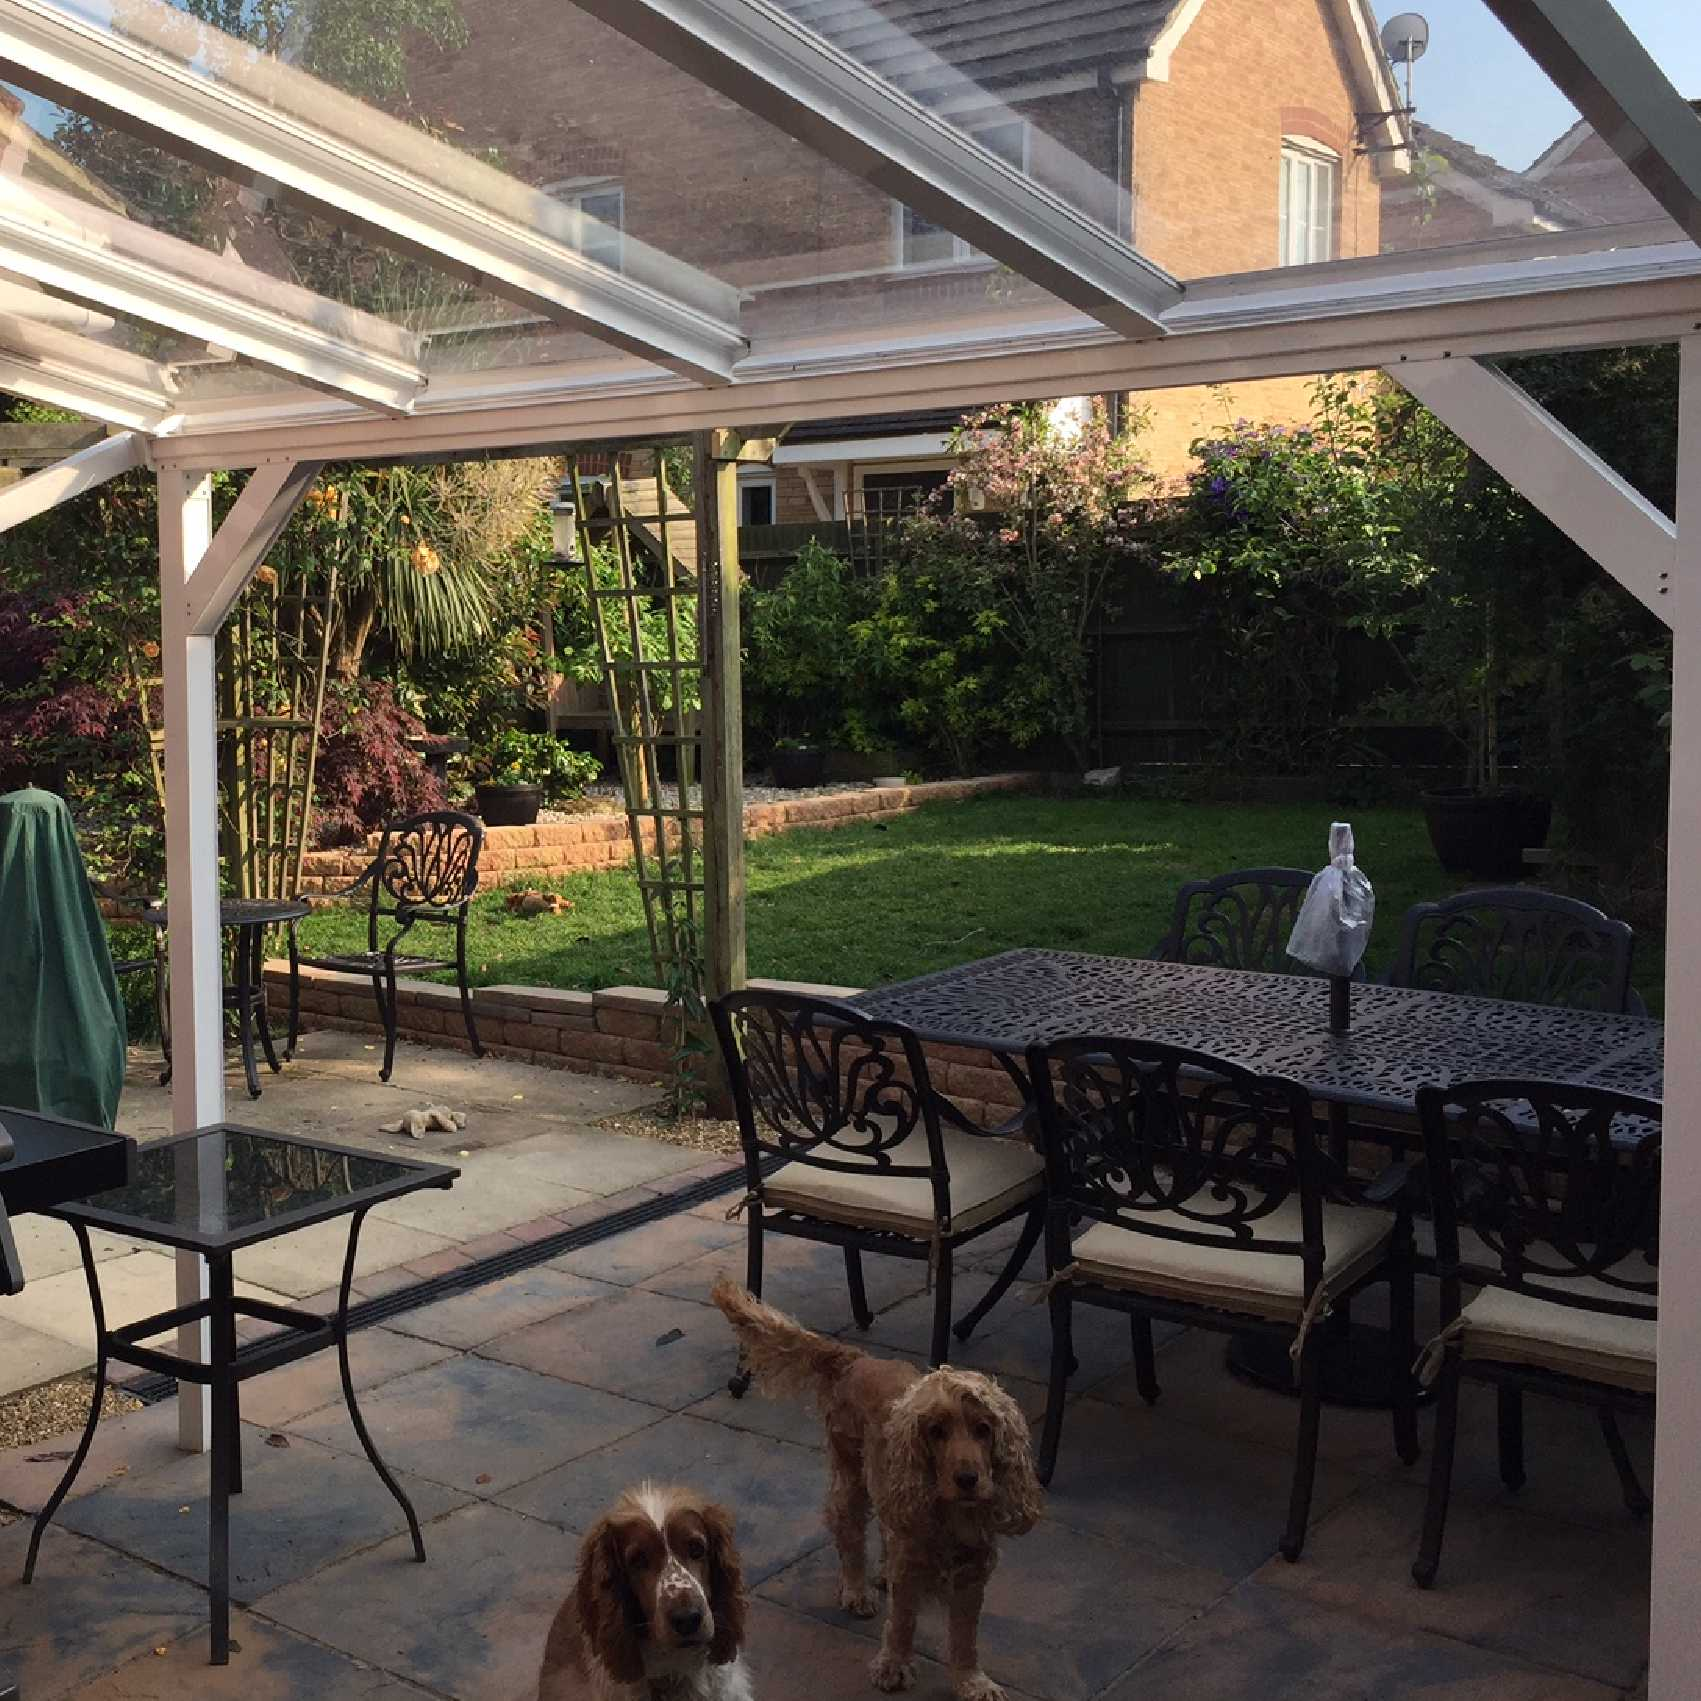 Affordable Omega Smart White Lean-To Canopy UNGLAZED for 6mm Glazing - 3.5m (W) x 2.0m (P), (3) Supporting Posts